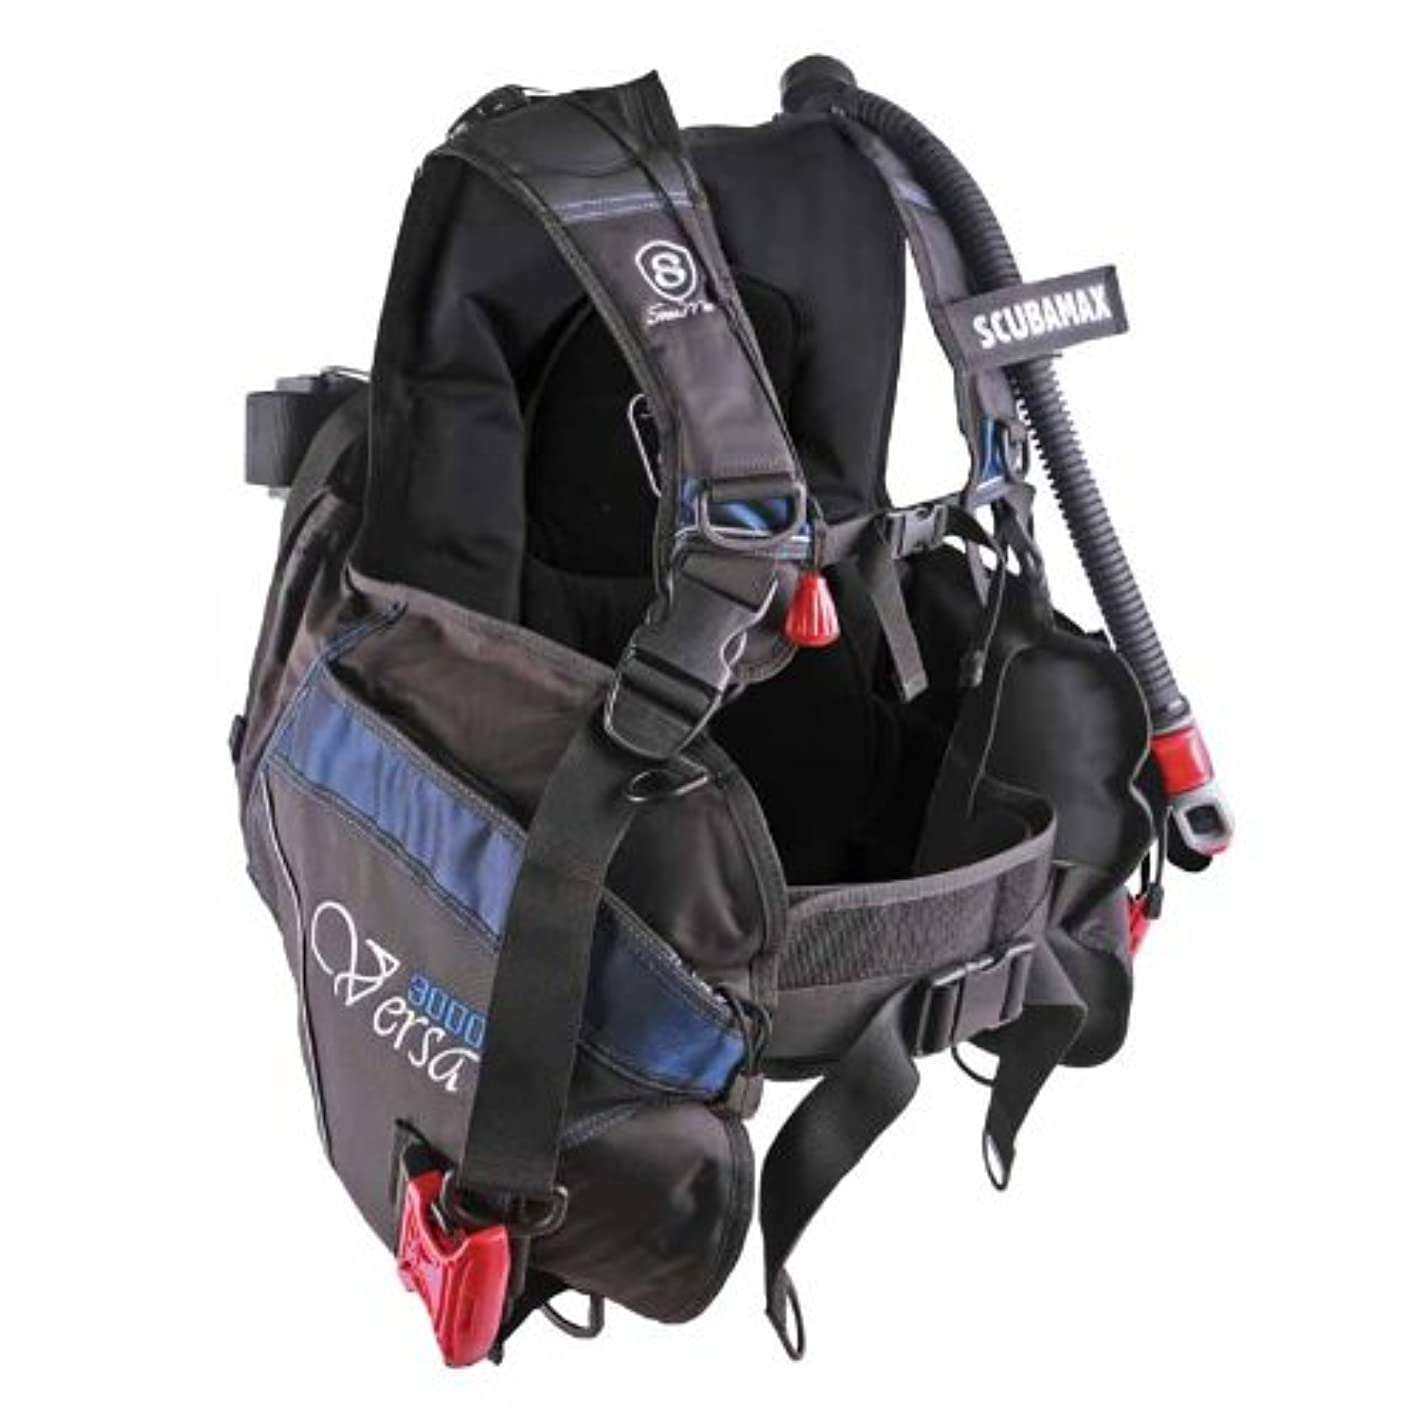 安らぎ勝者アッティカスNew ScubaMax Versa Scuba Diving Travel BCD (Size Medium) by ScubaMax